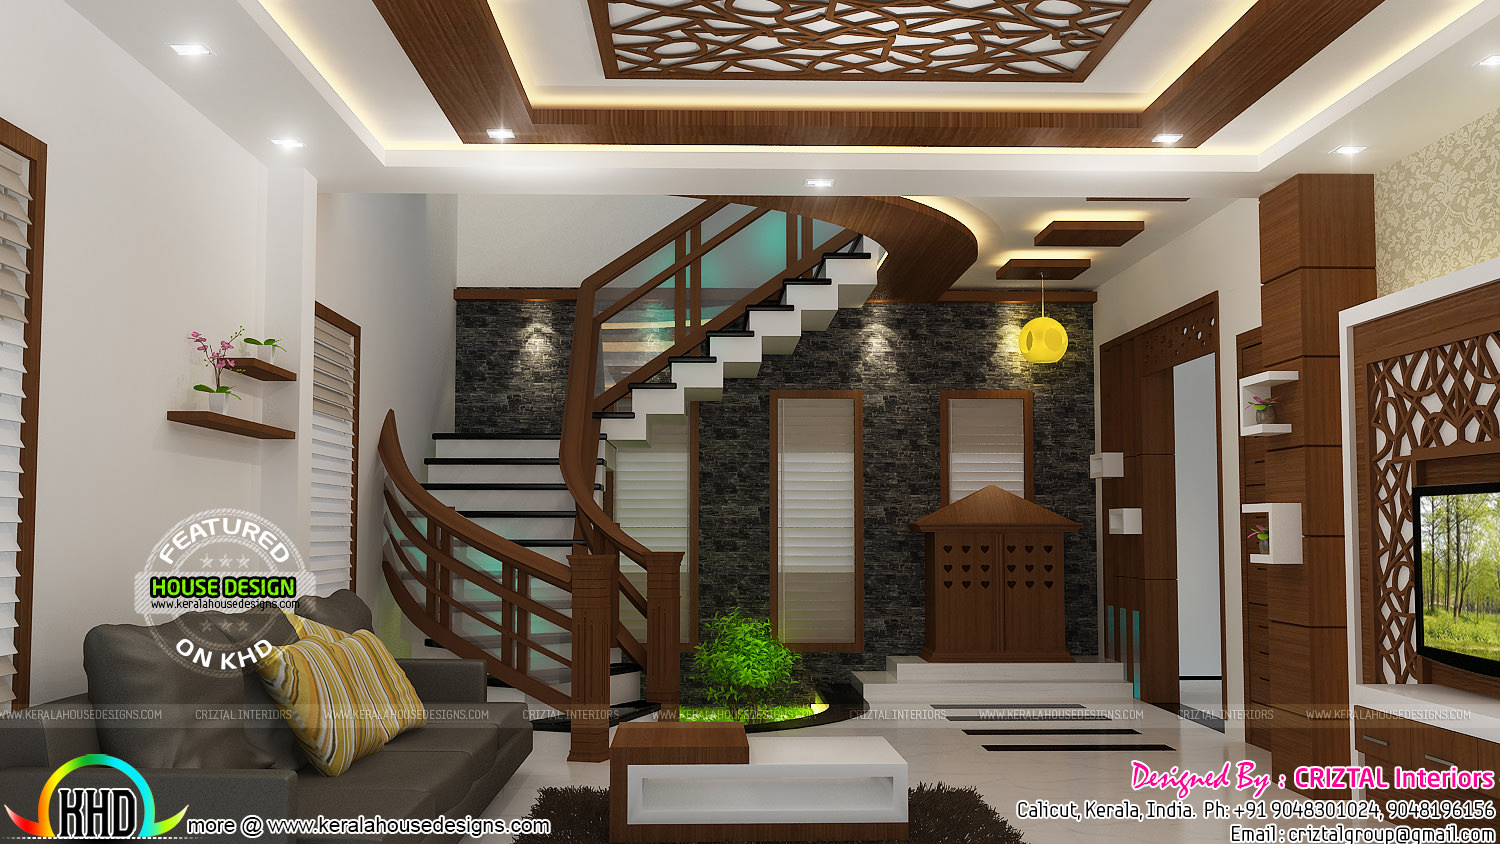 Bedroom dining hall and living interior kerala home for Home interior design in hall